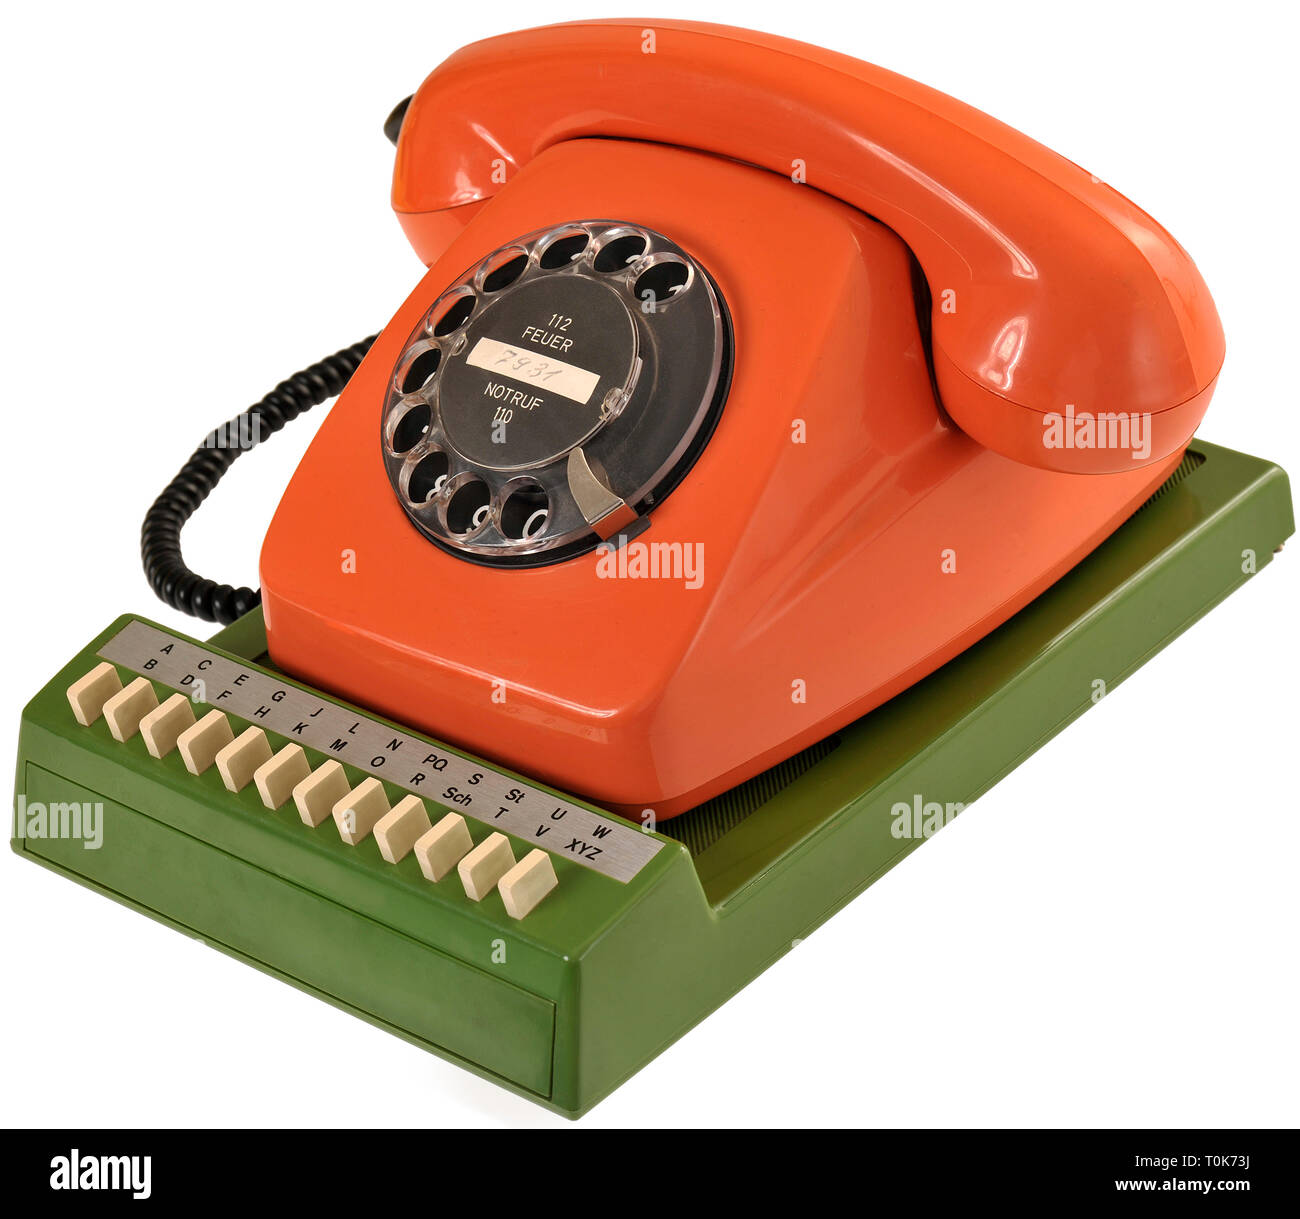 technics, telephones, telephone FeTAp 611-2, Germany, 1974, Additional-Rights-Clearance-Info-Not-Available - Stock Image